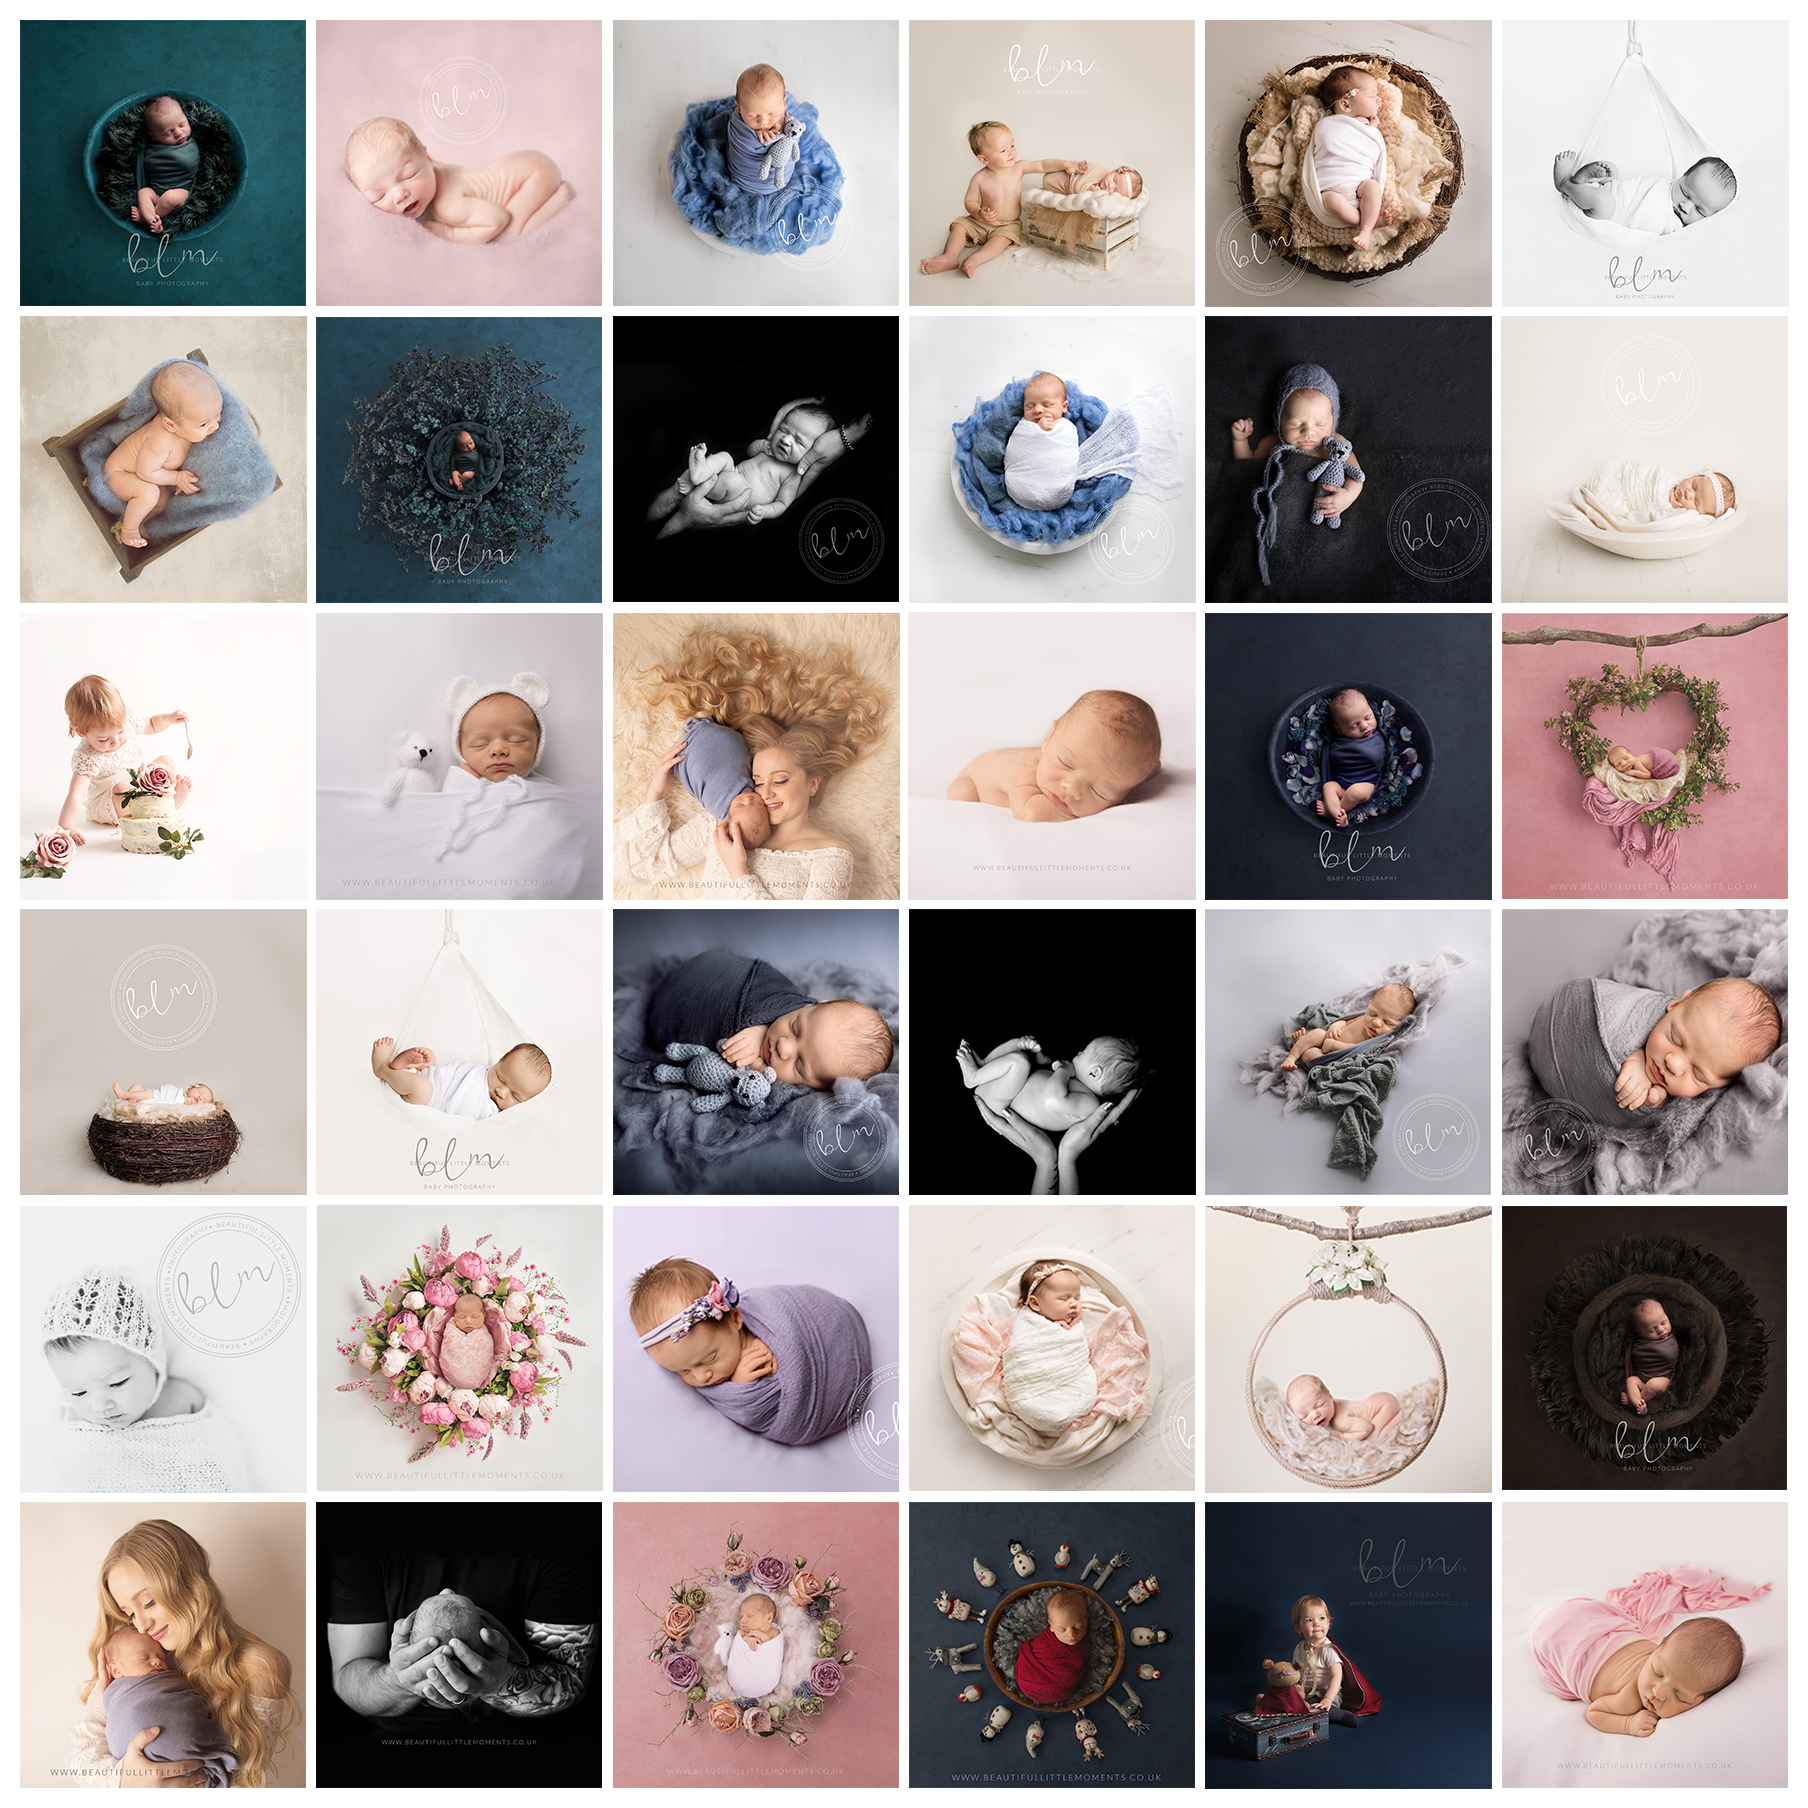 insta grid of images